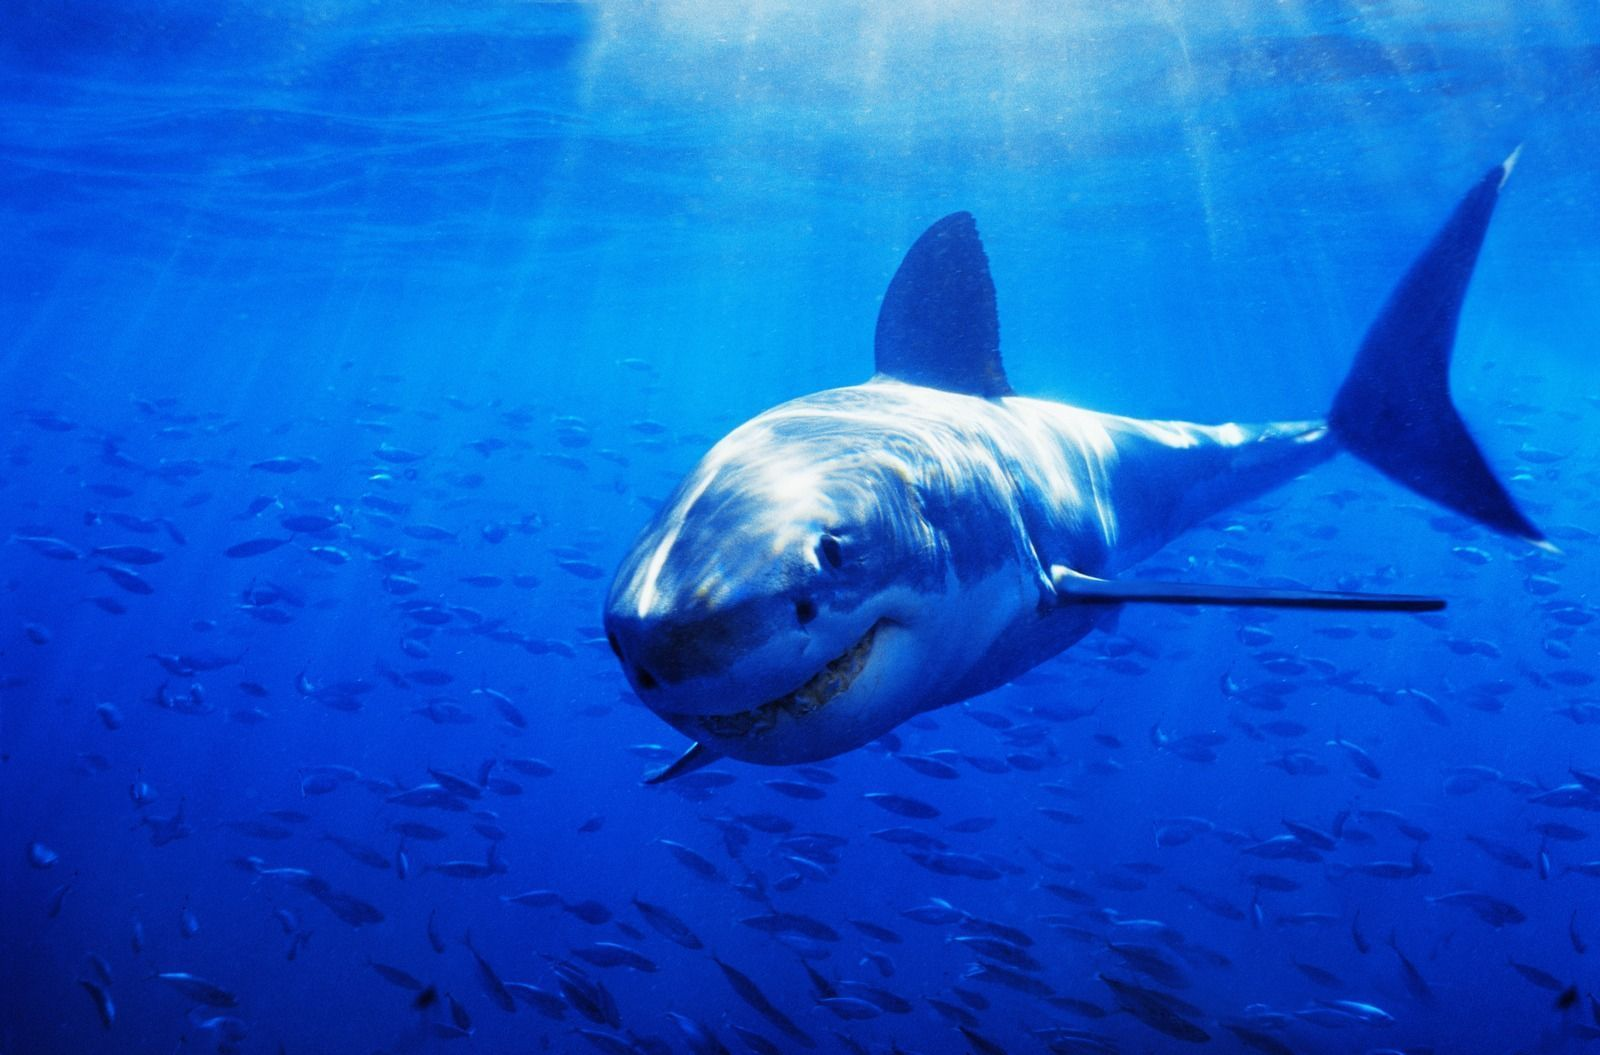 Pleasing Shark Wallpaper HD Wallpapers HD Wallpaper x